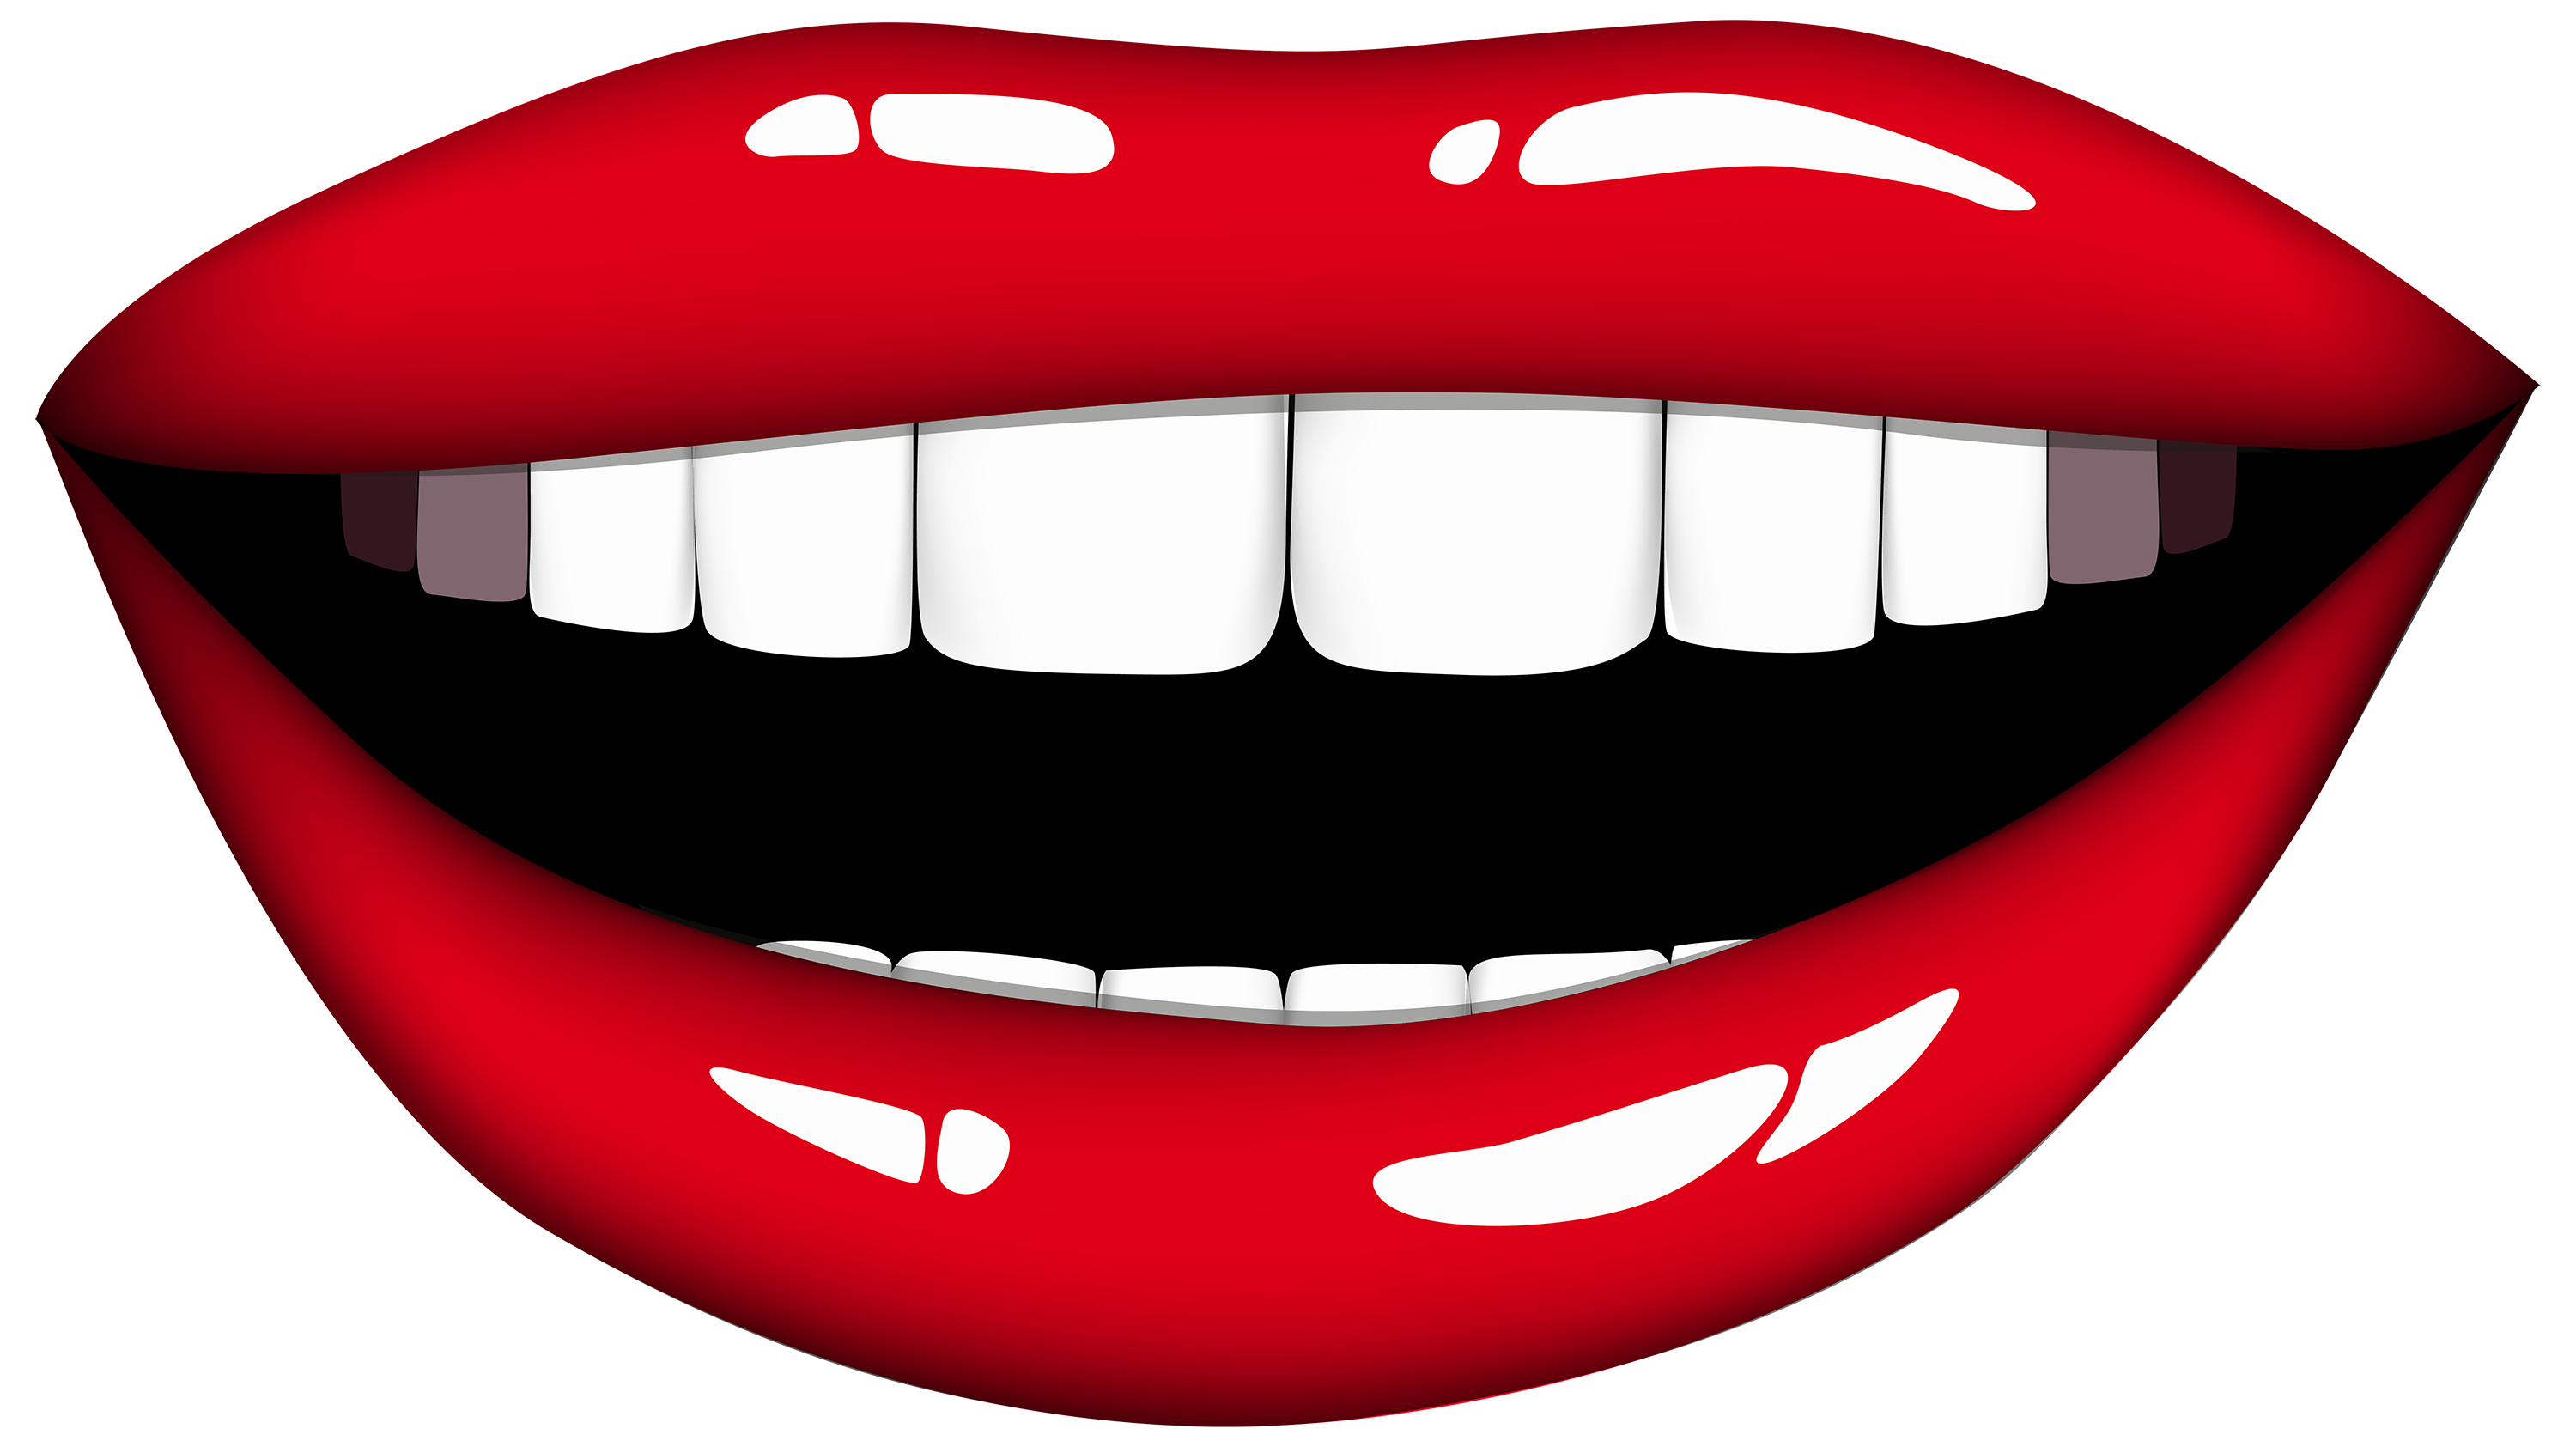 Smiling heart clipart png freeuse library Laughing mouth free clipart - ClipartFest png freeuse library